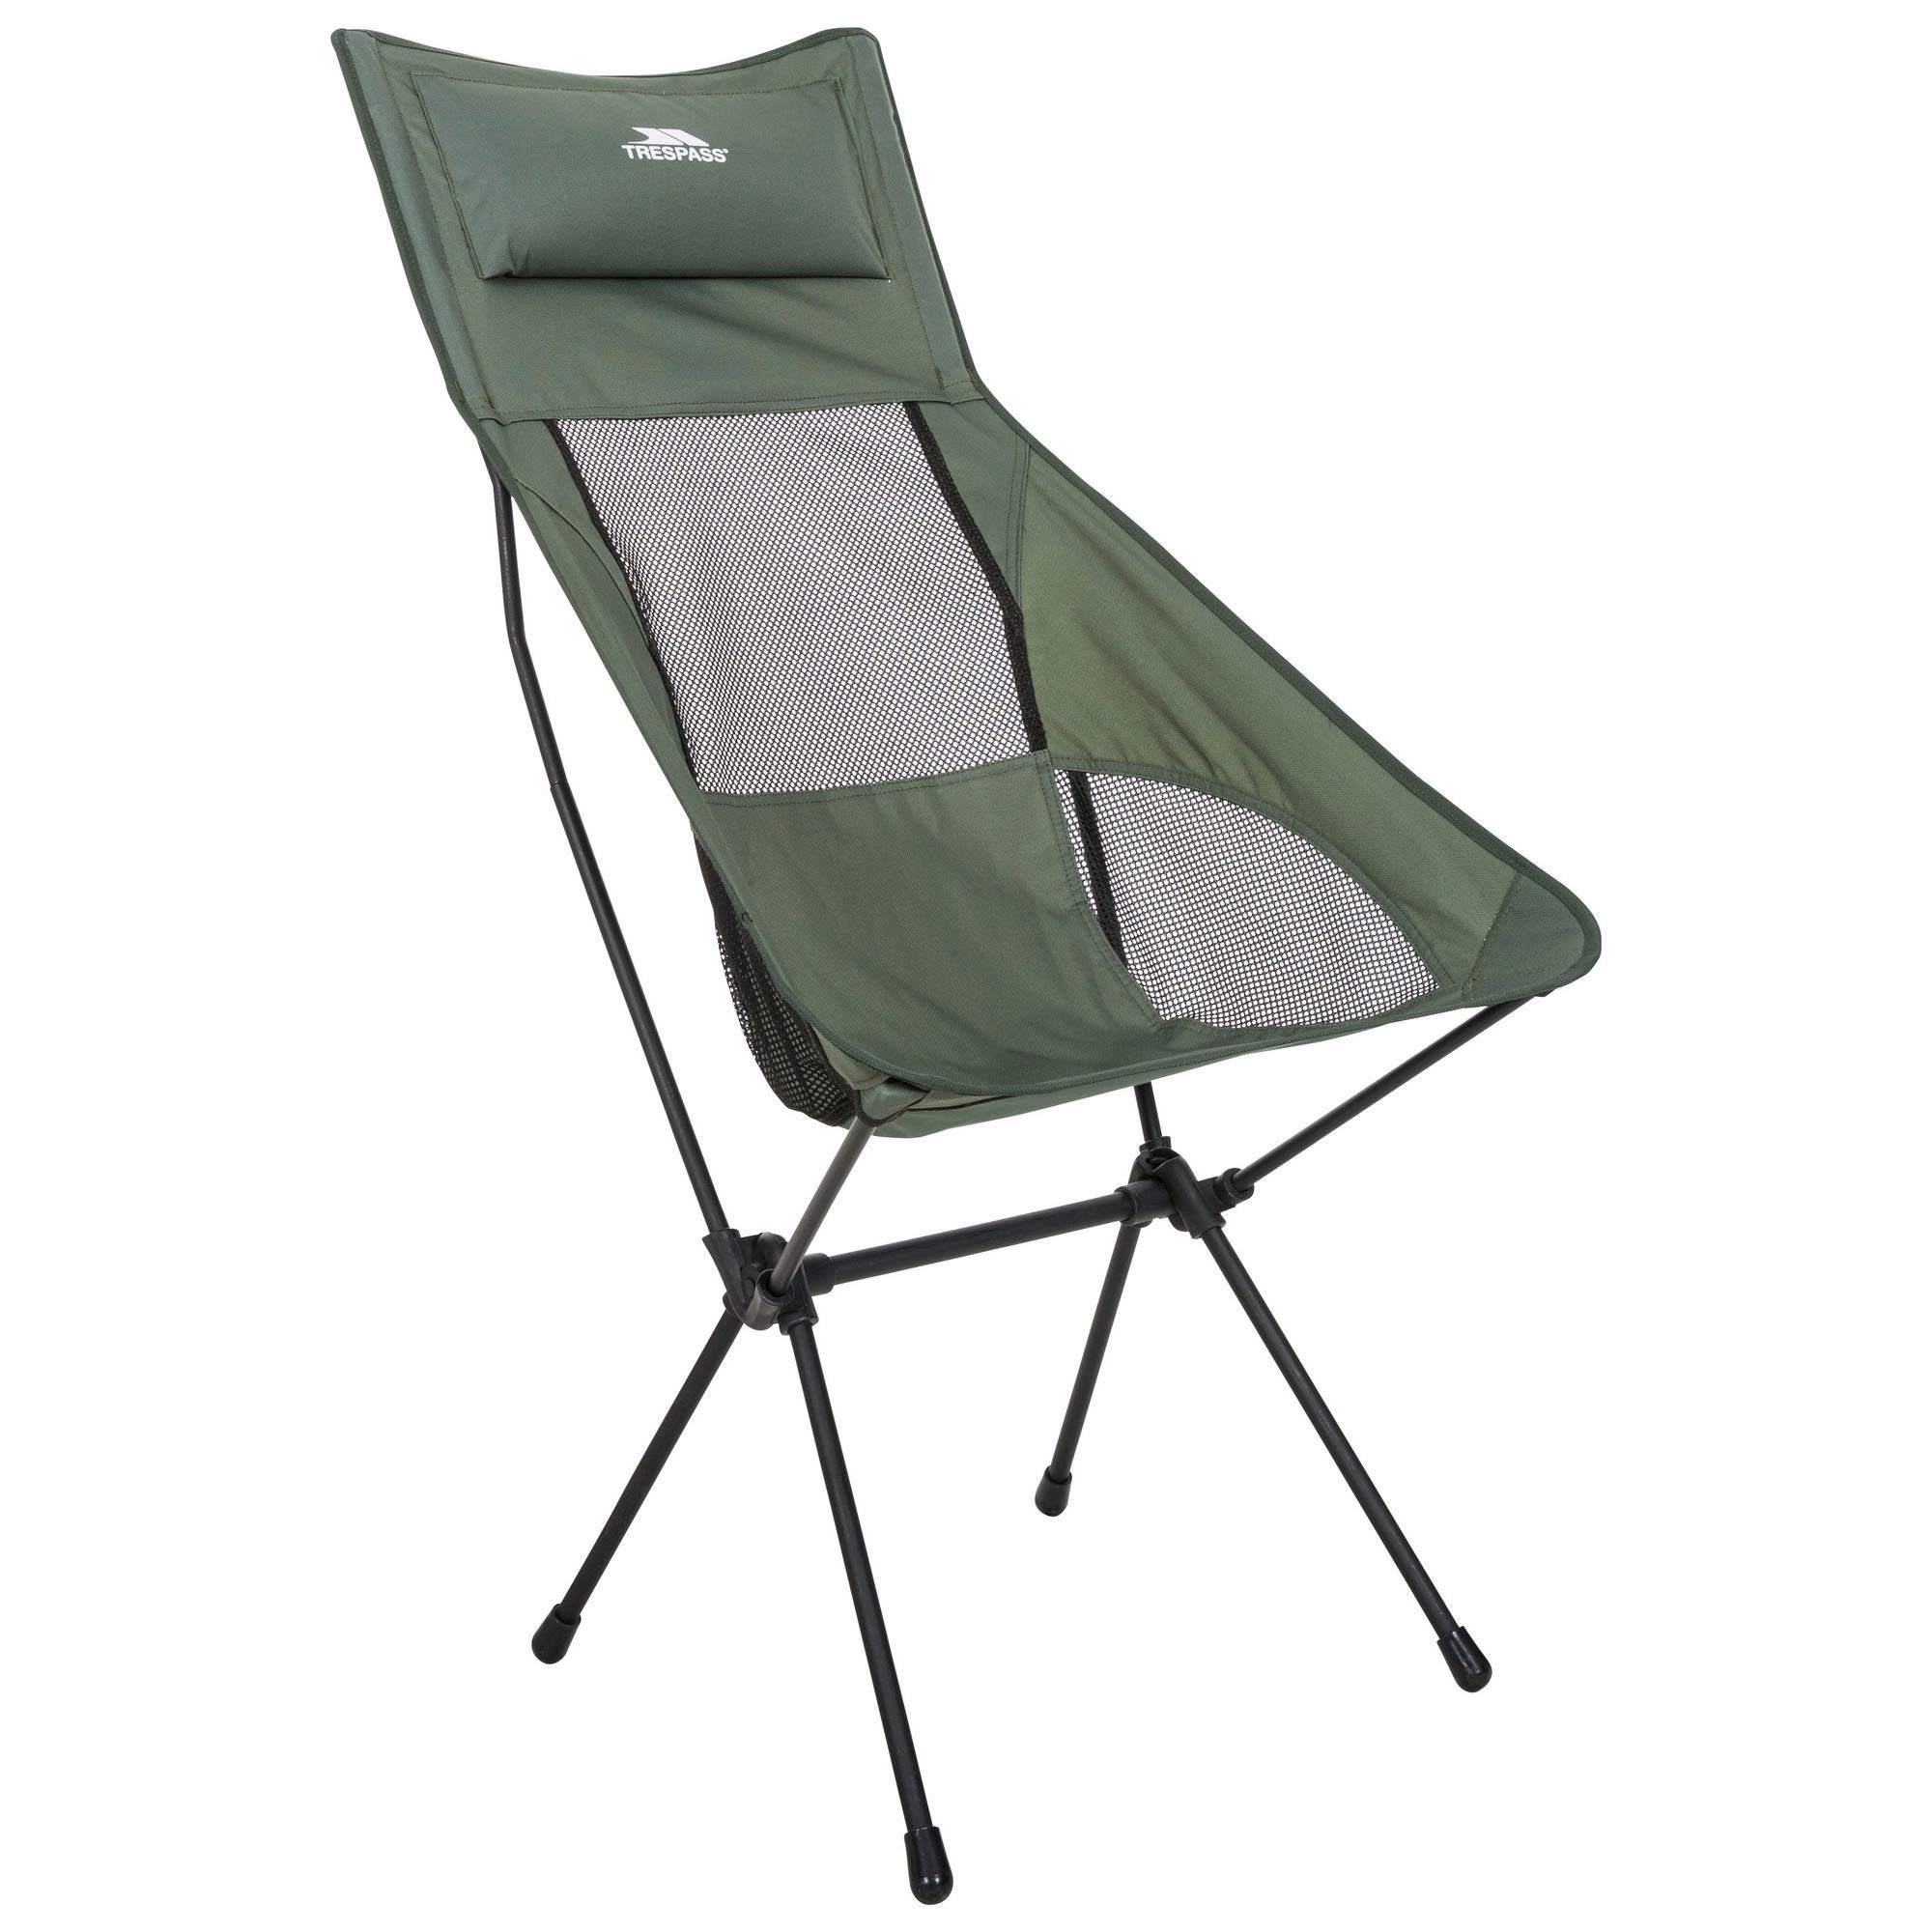 Trespass Roost Tall Lightweight Folding Chair (One Size) (Olive) by Trespass